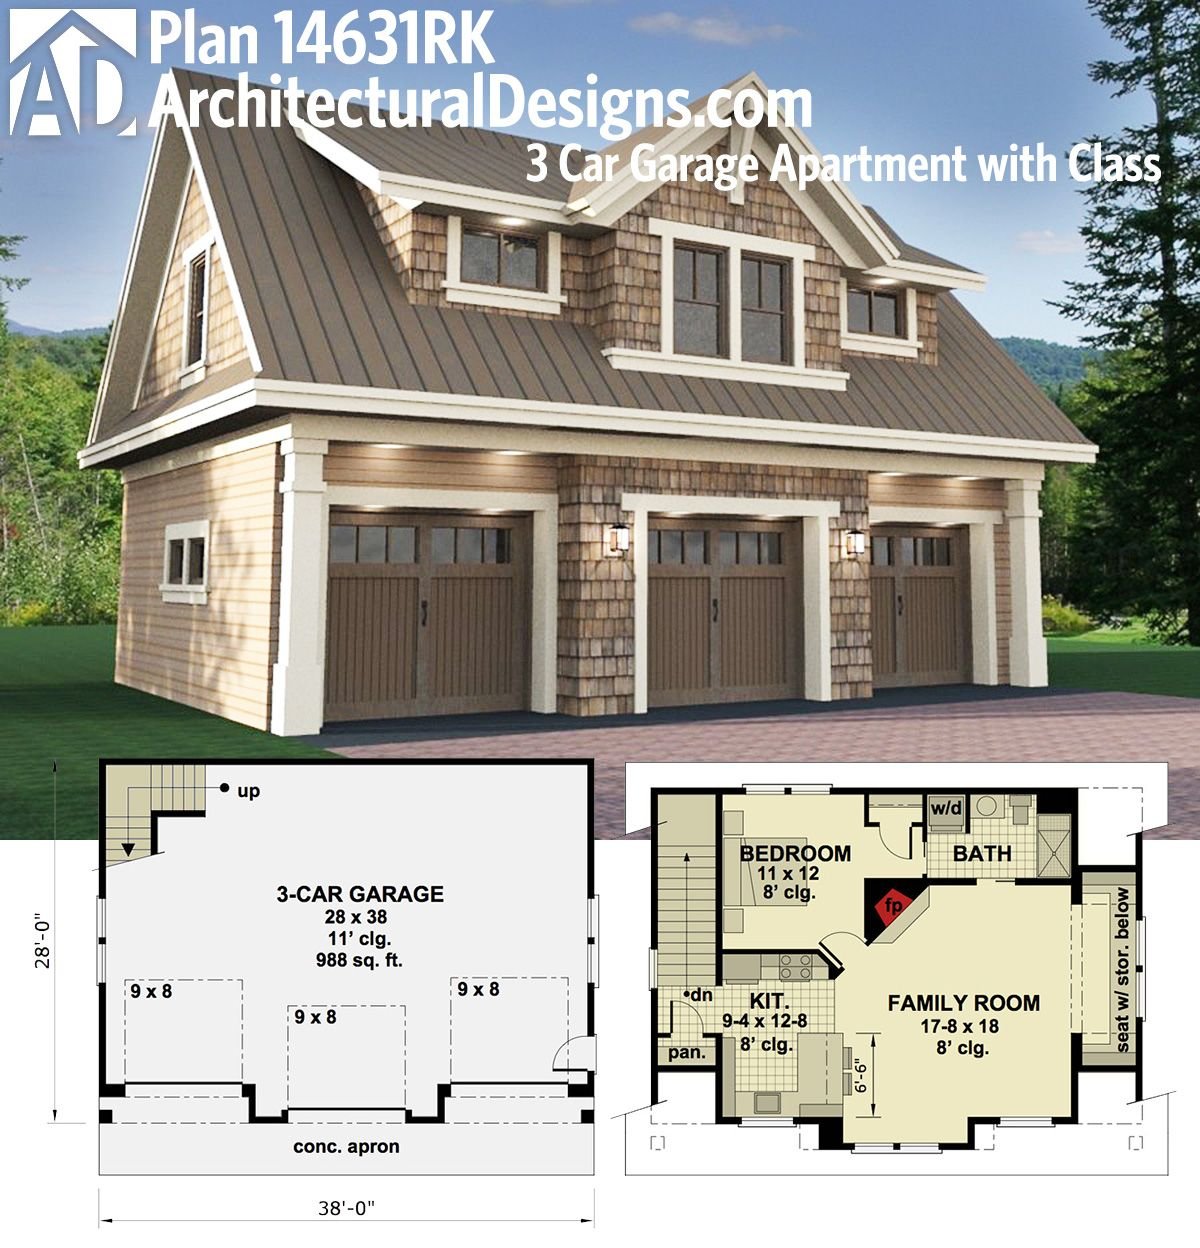 Plan 14631rk 3 car garage apartment with class carriage for Car carriage